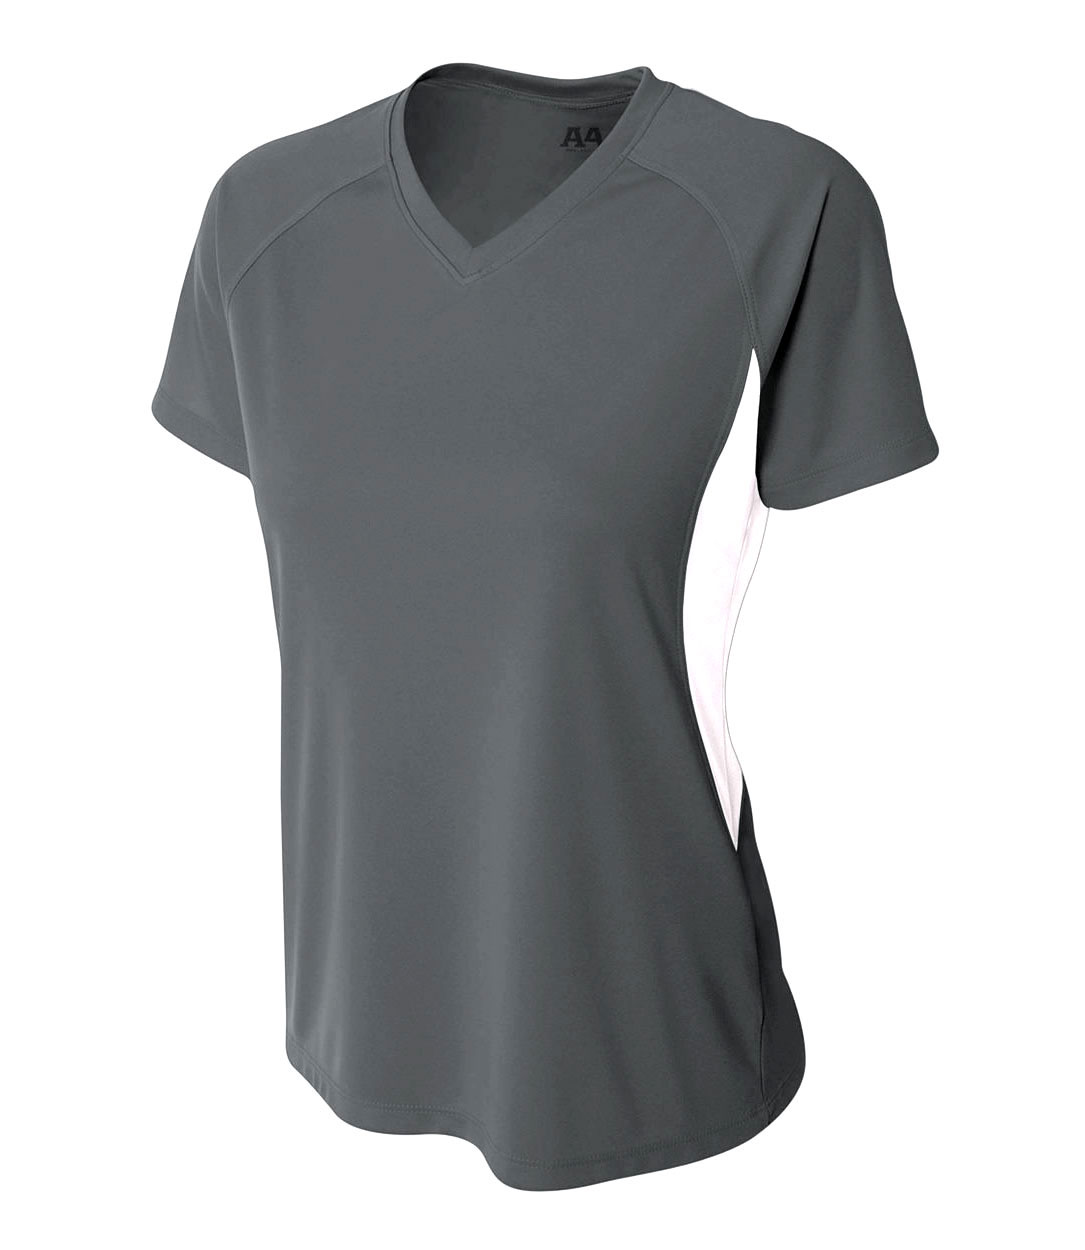 A4 Womens Cooling Performance Color Blocked V-Neck